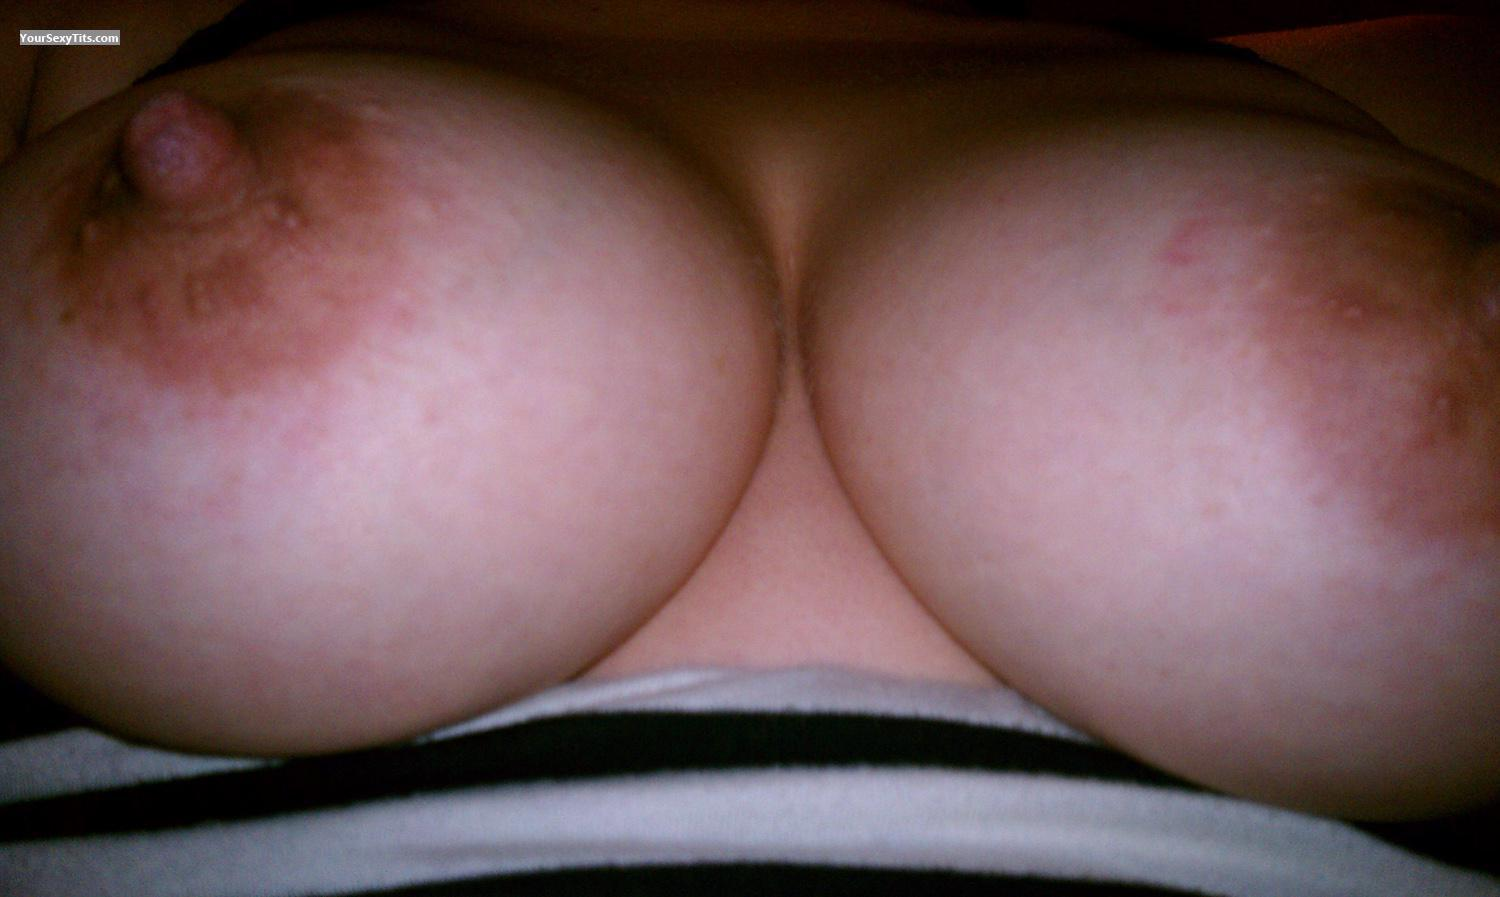 Tit Flash: Wife's Big Tits (Selfie) - C from United States